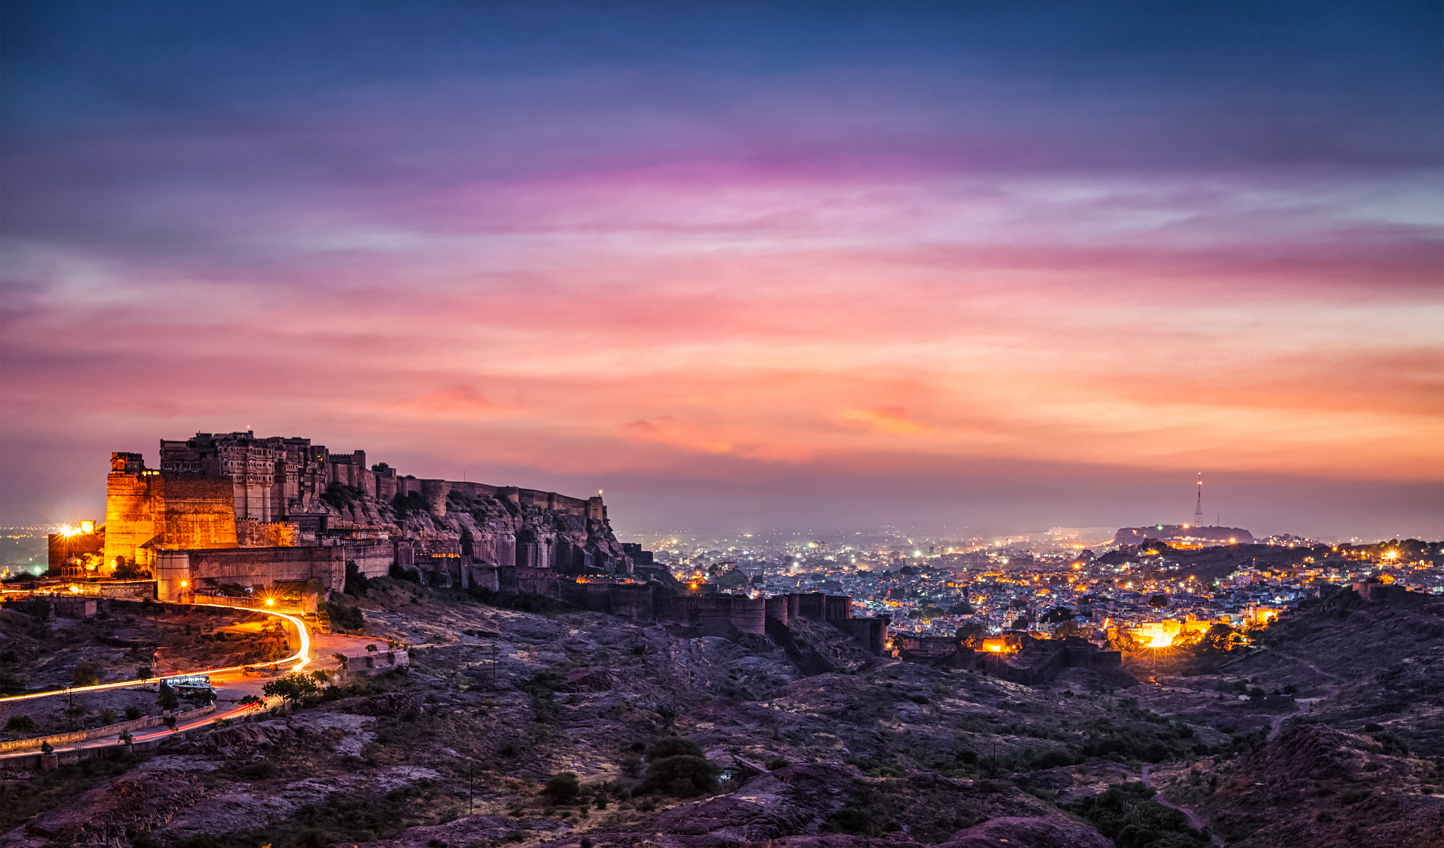 The Mehrangarh Fort provides a dramatic backdrop to the city of Jodhpur